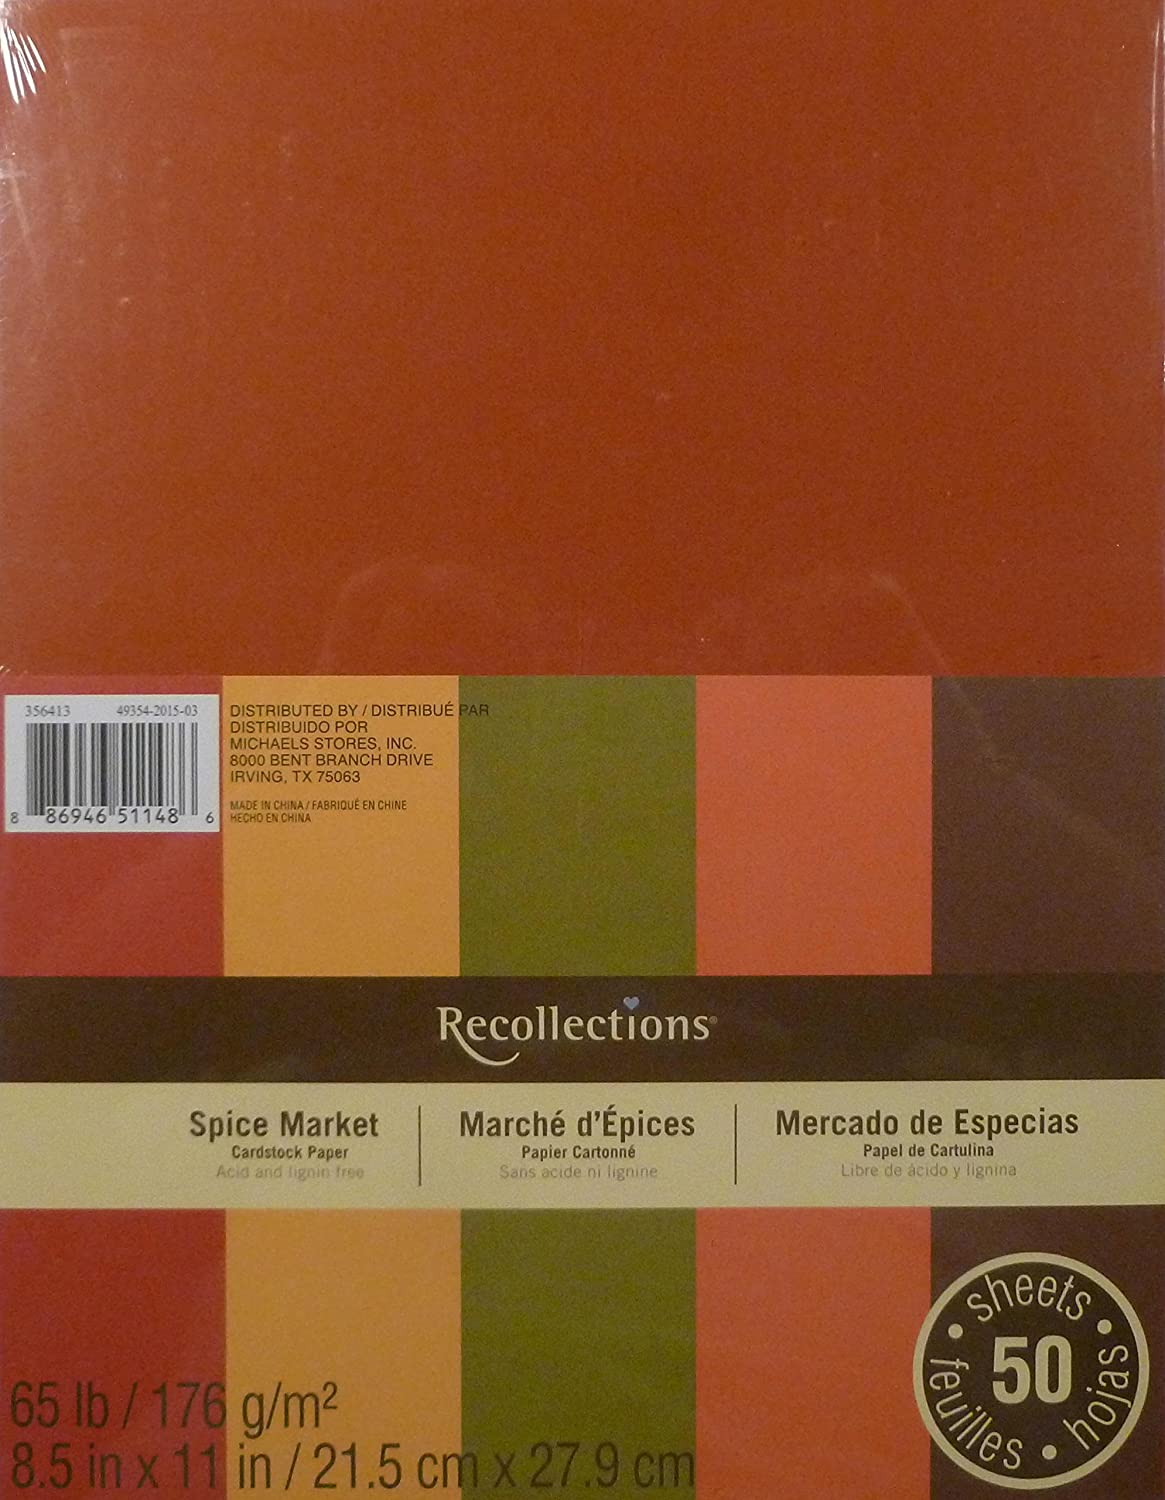 Amazon.com: Recollections Cardstock Paper, Spice Market 8 1/2 x 11